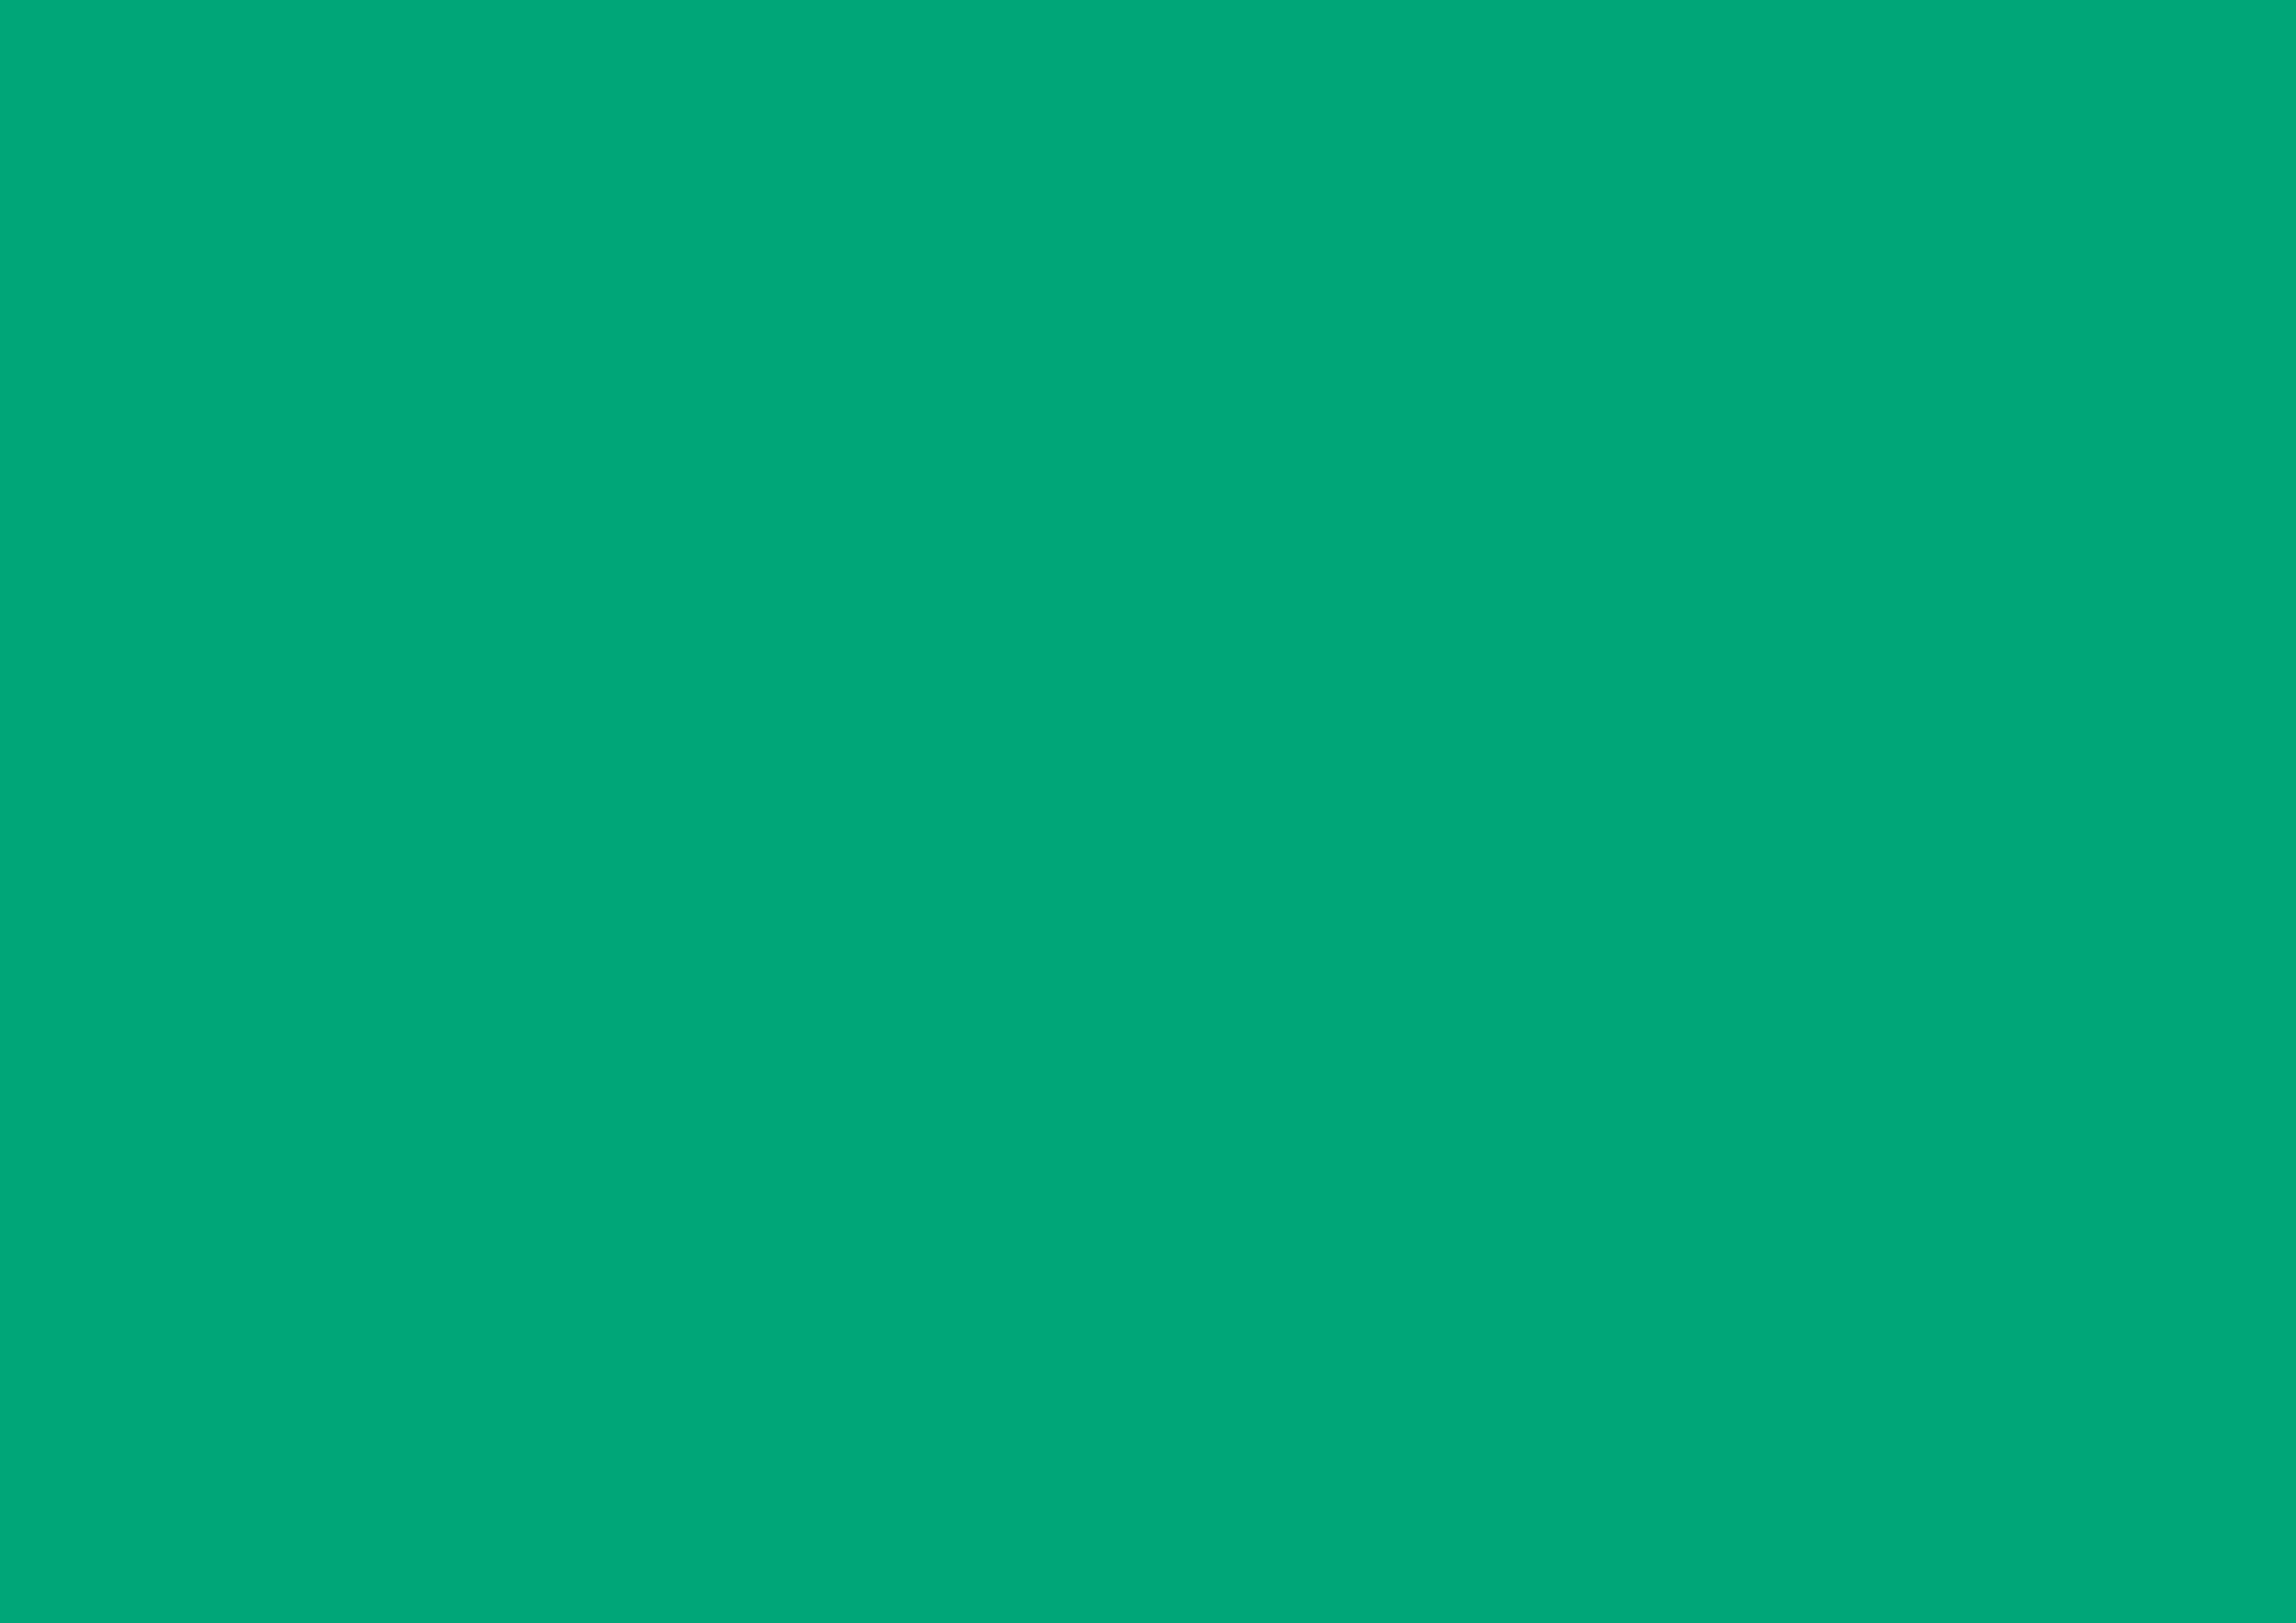 3508x2480 Green Munsell Solid Color Background